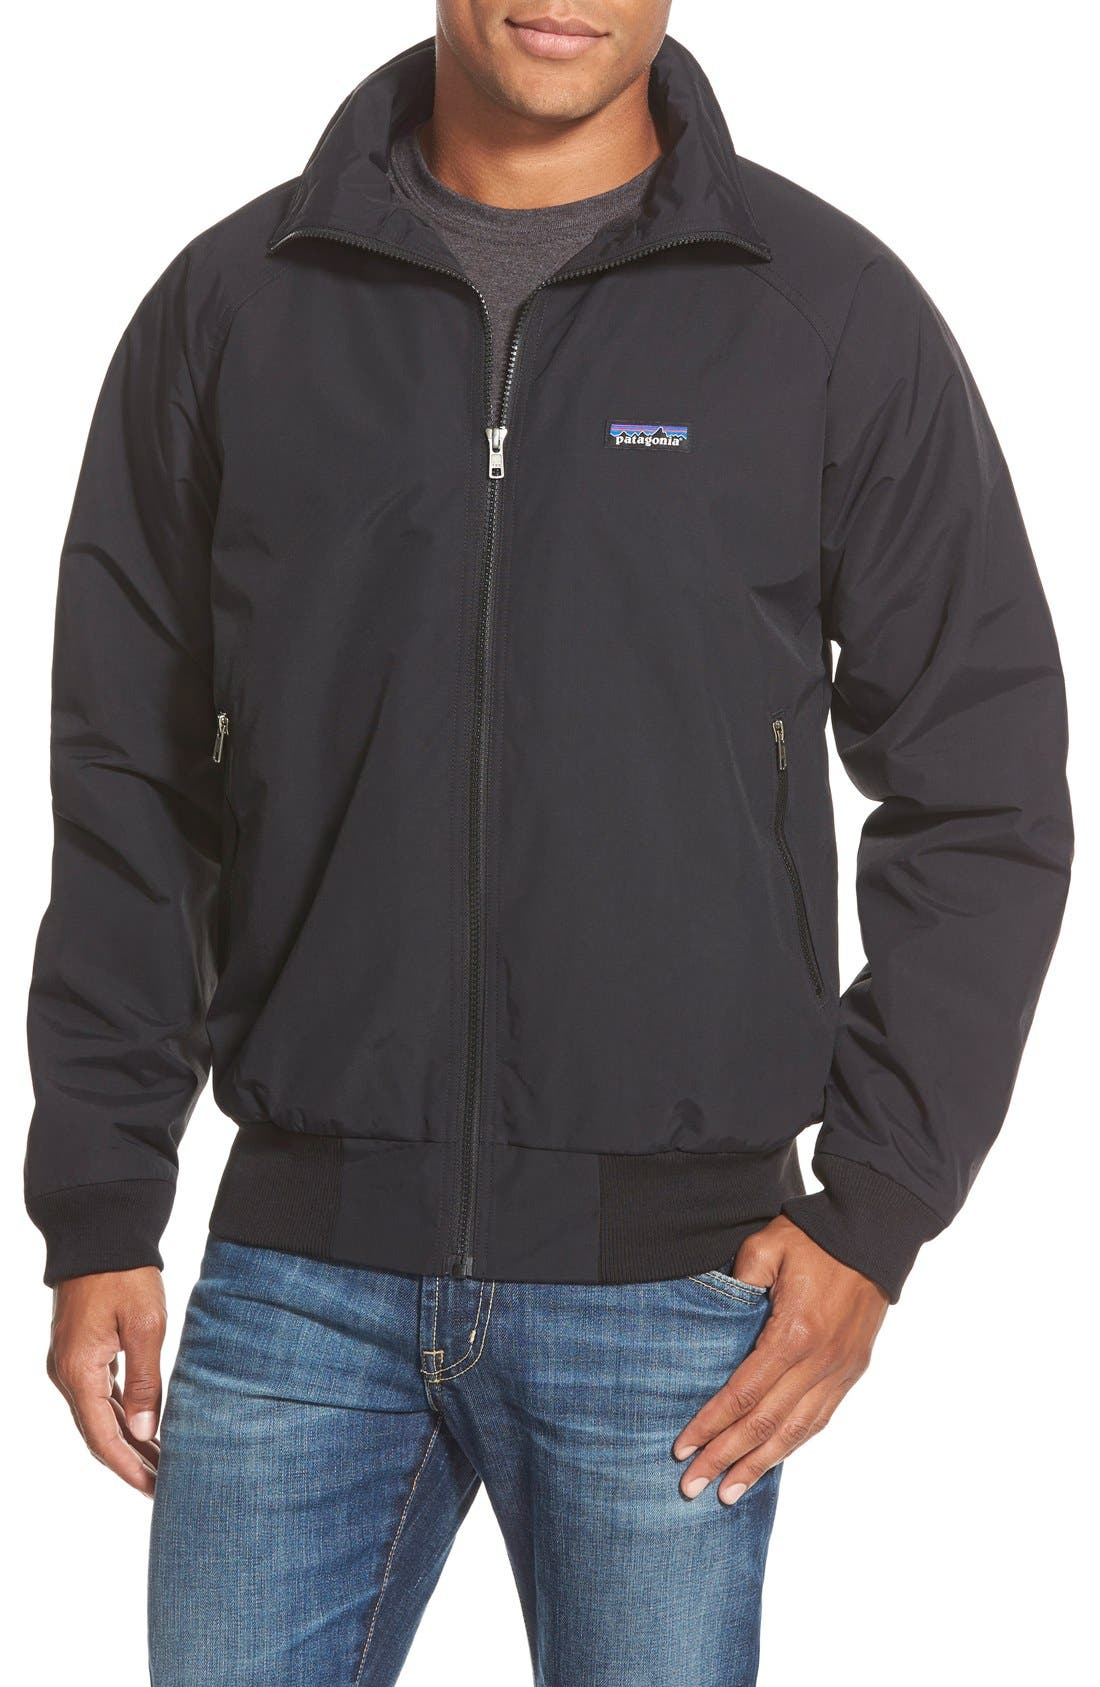 Alternate Image 1 Selected - Patagonia 'Synchilla®' DWR Shell Bomber Jacket